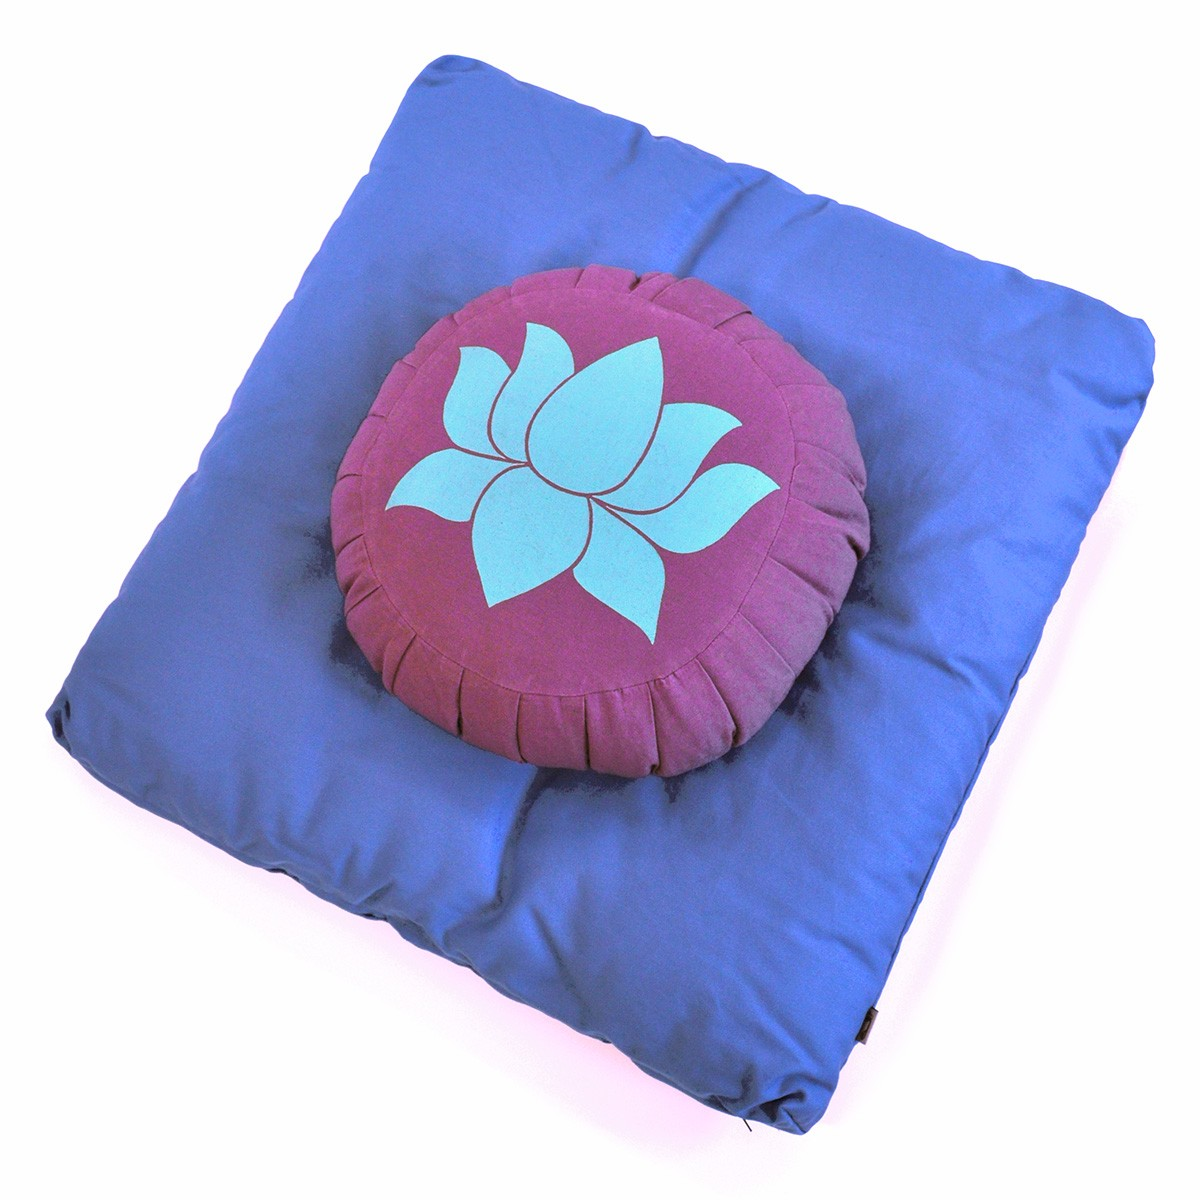 Meditation Cushion Package